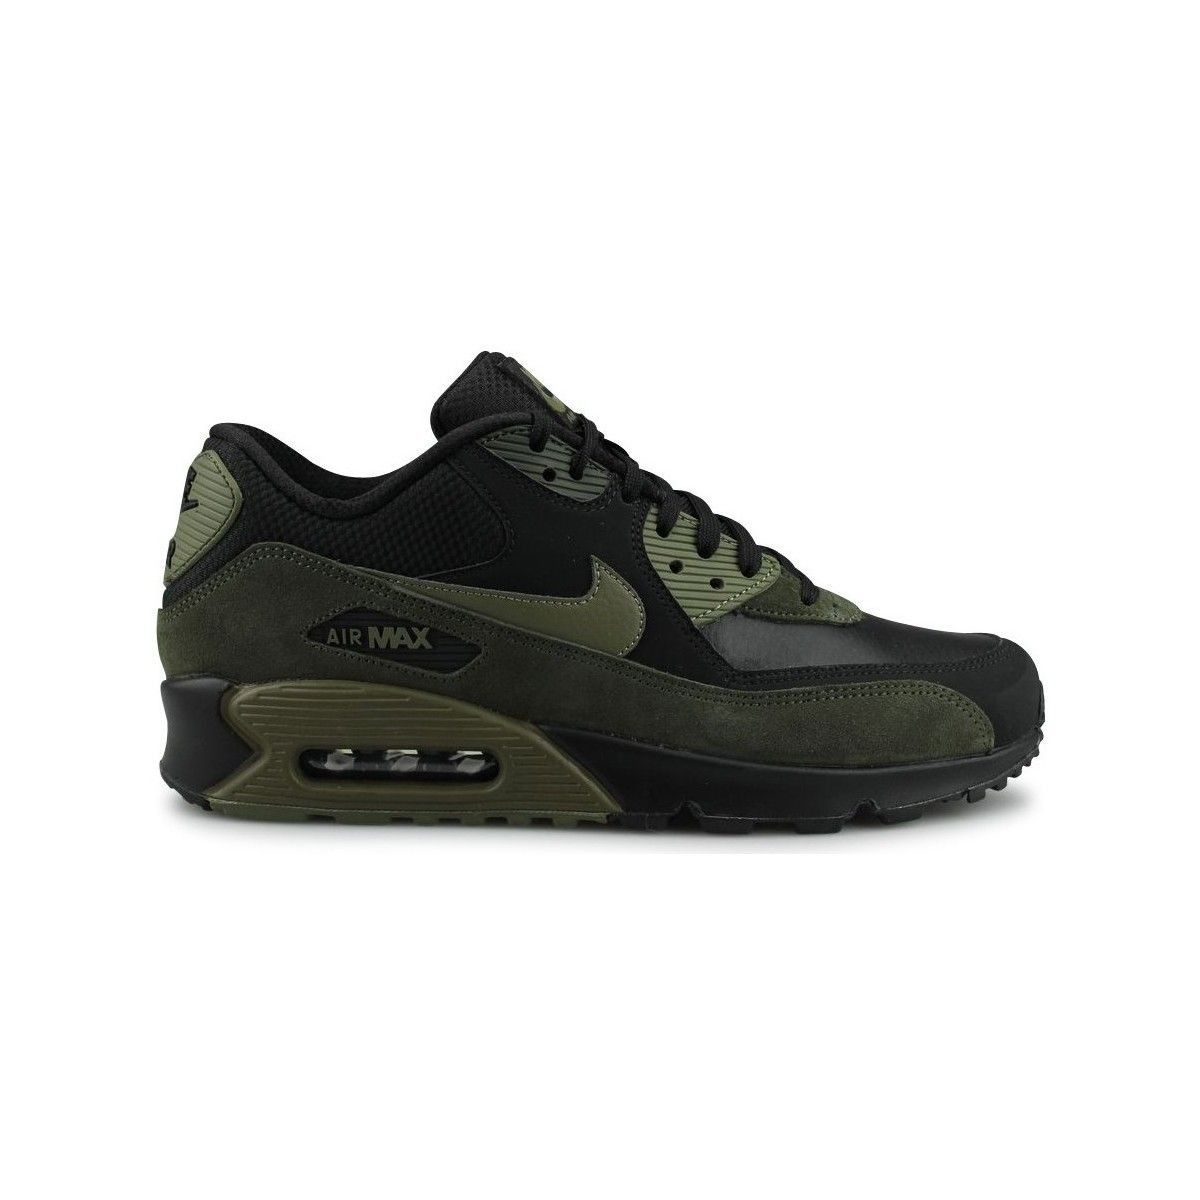 3c691556b Baskets Air Max 90 Leather